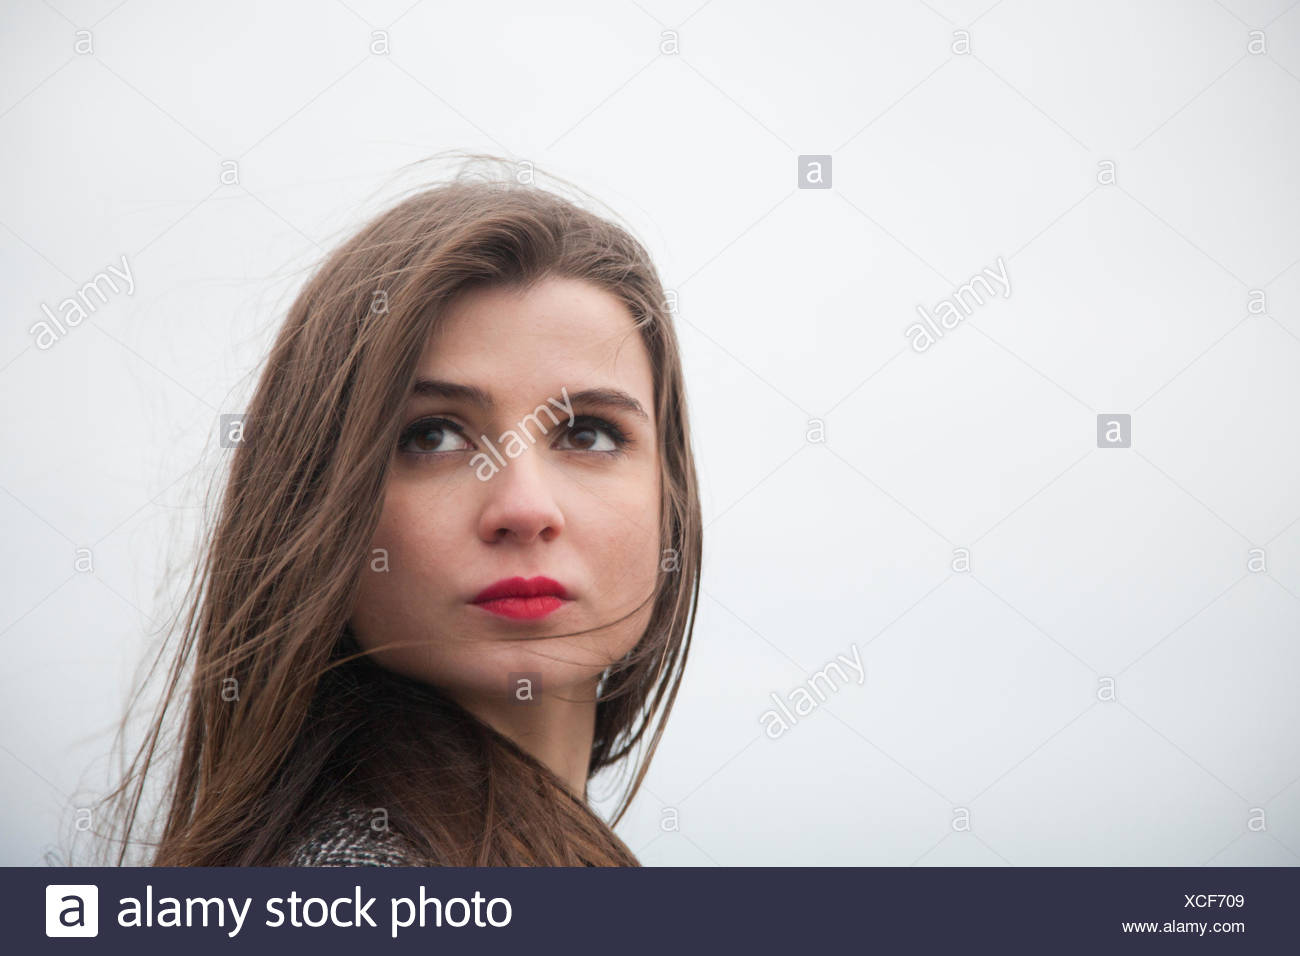 Portrait of a young woman with long hair - Stock Image